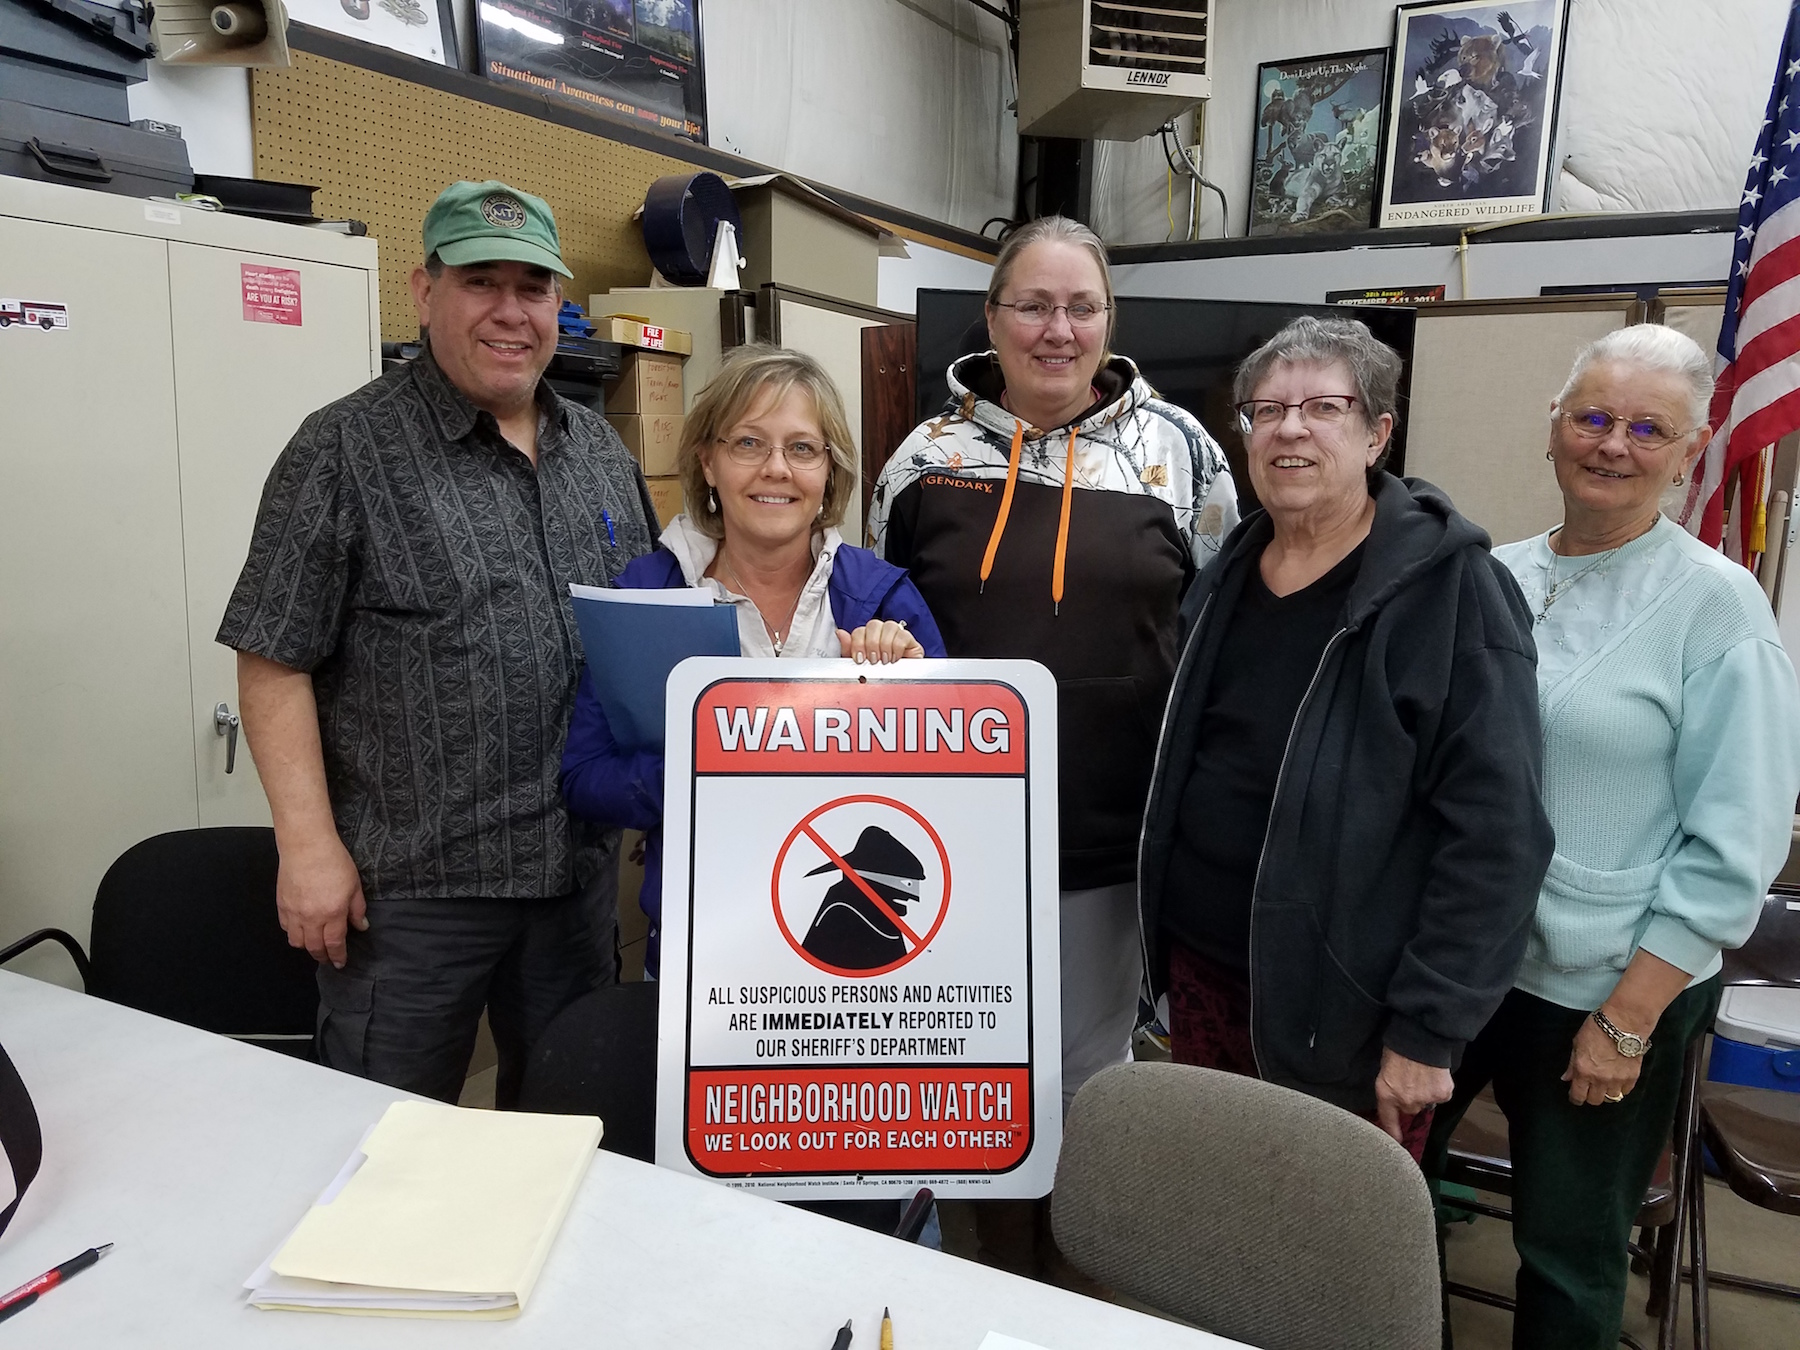 Neighborhood Watch Members at April 2017 Meeting